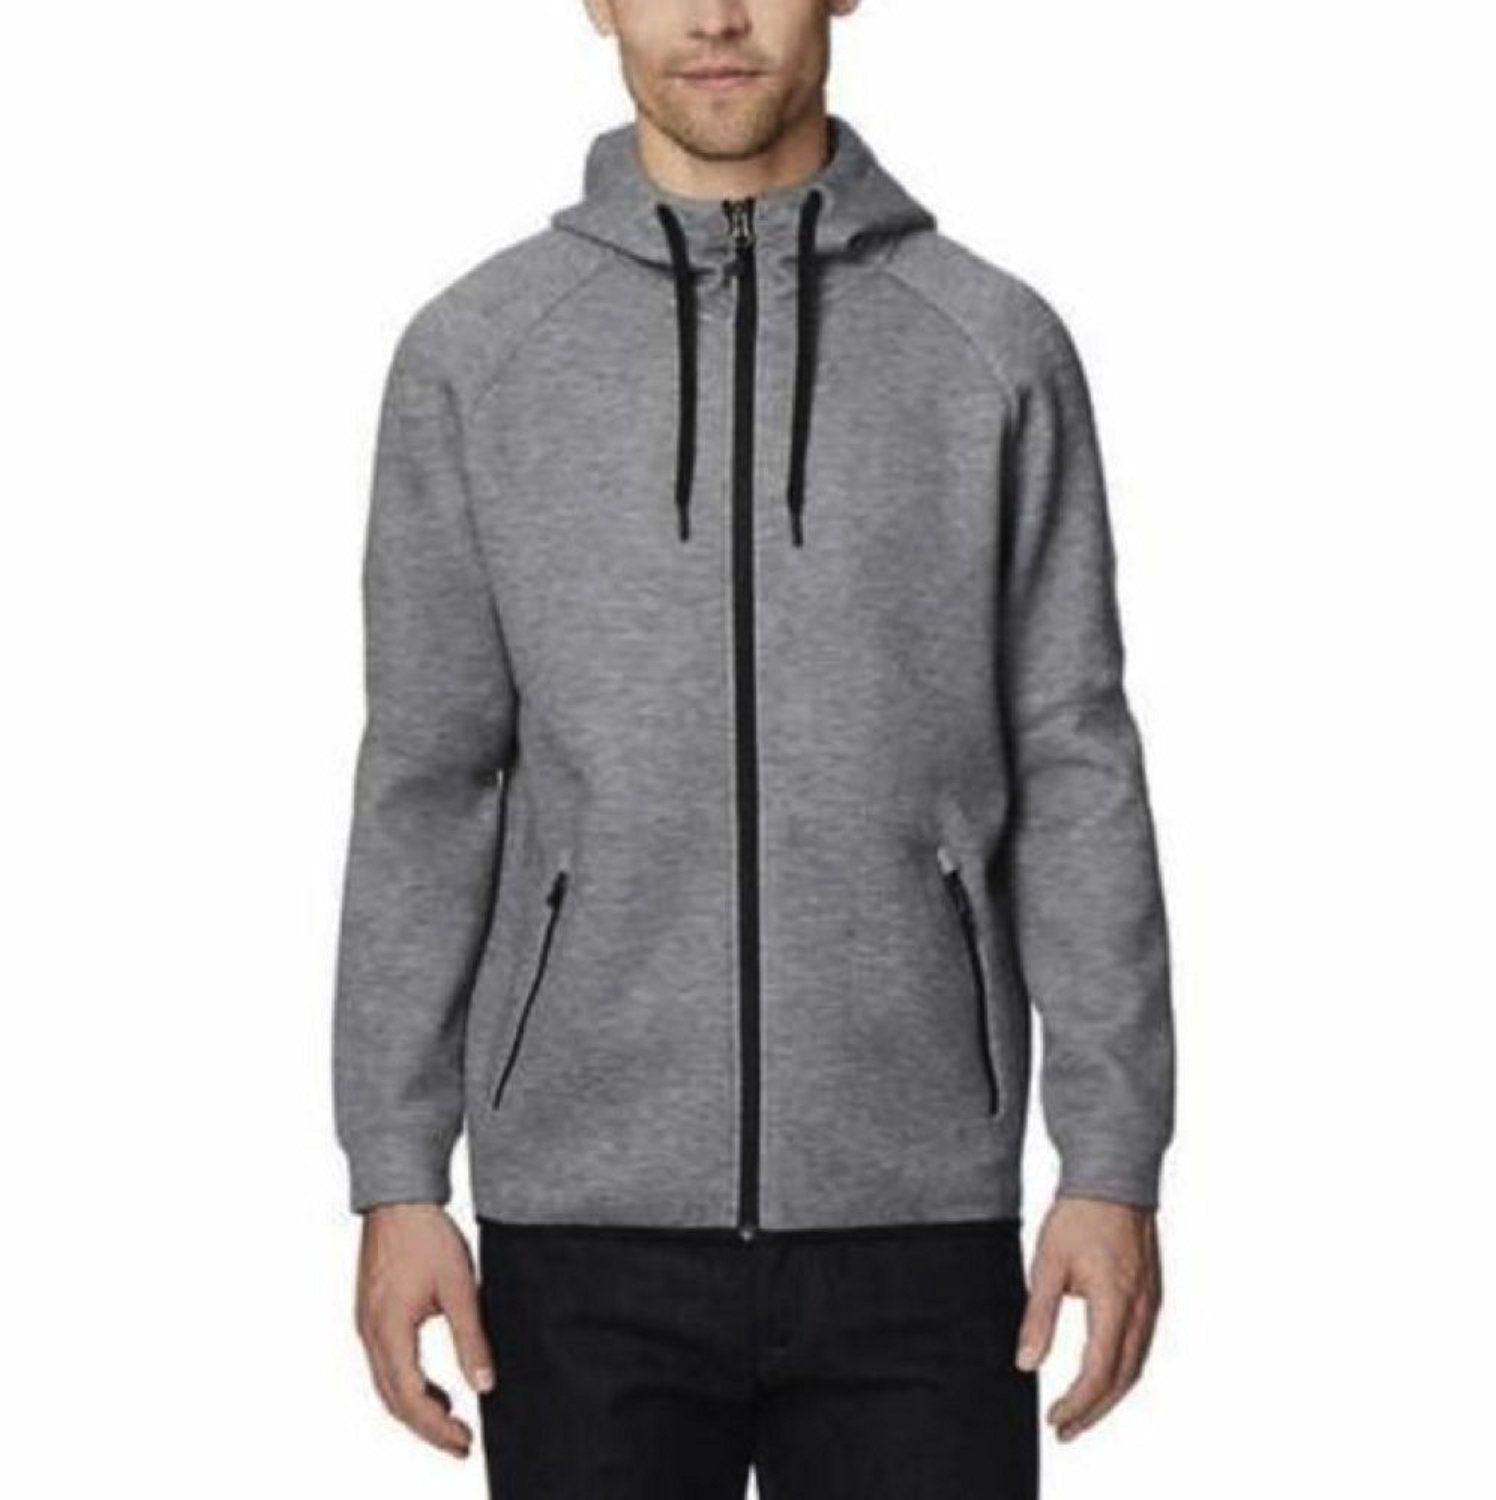 32 Degrees Men's Hoodie Sweatshirt Full Zip Tech Fleece Track Jacket at  Amazon Men's Clothing store